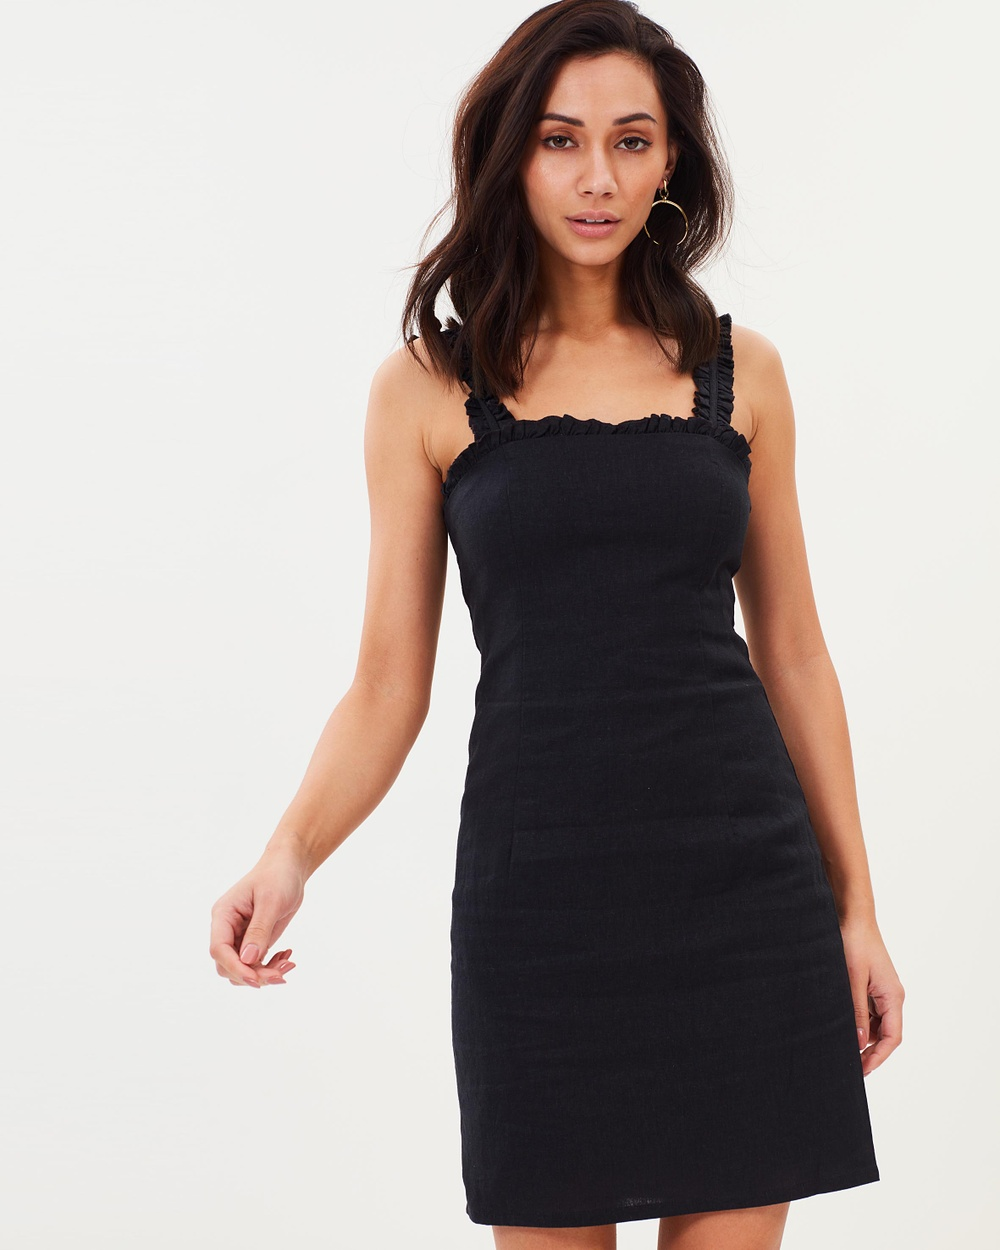 Bardot Shift Frill Dress Dresses Black Shift Frill Dress